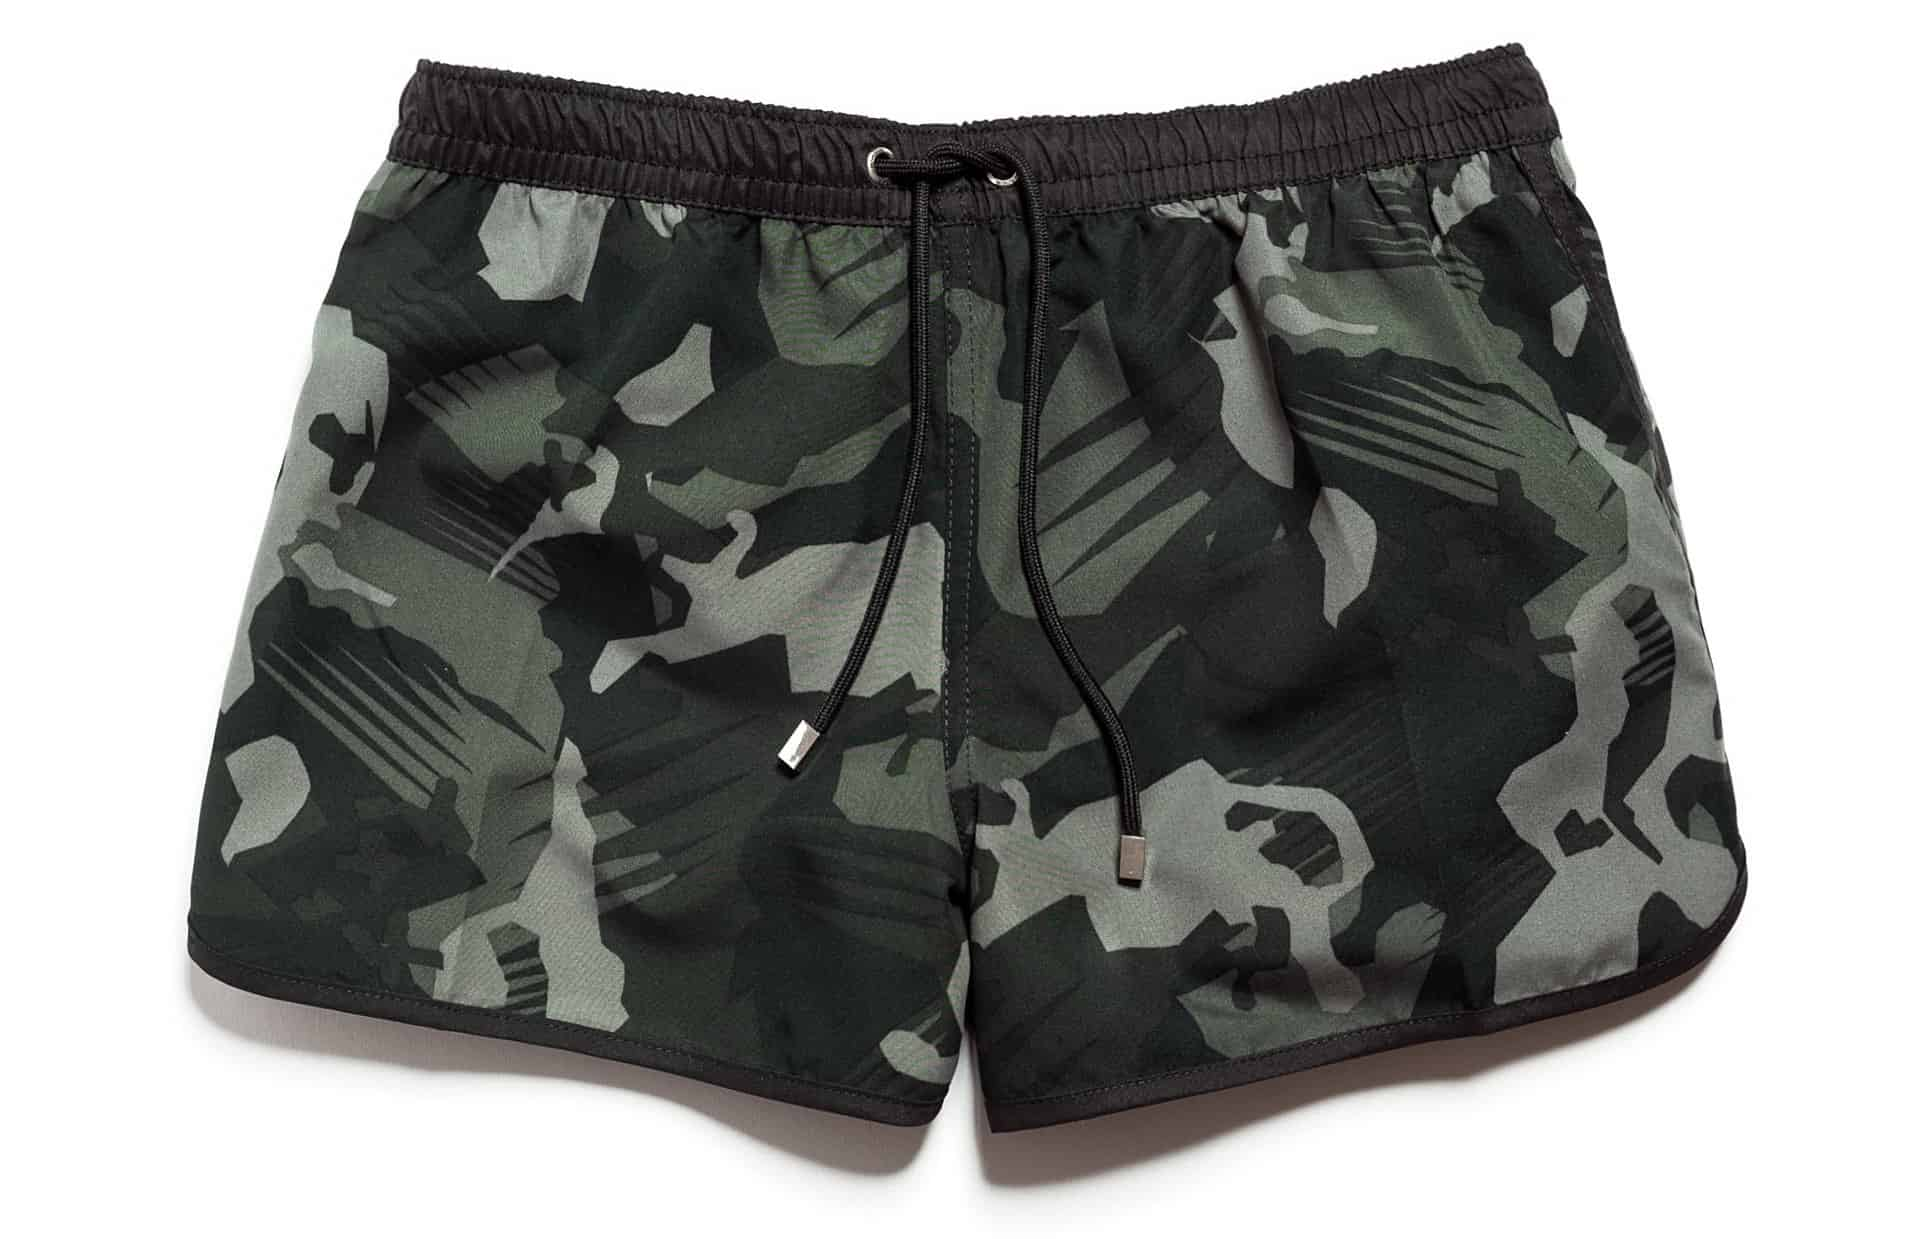 Mens Swimwear Guide Gentlemans Gazette Branded Gap Man Short Pants Original Zara Camouflage Swim Trunks 3590